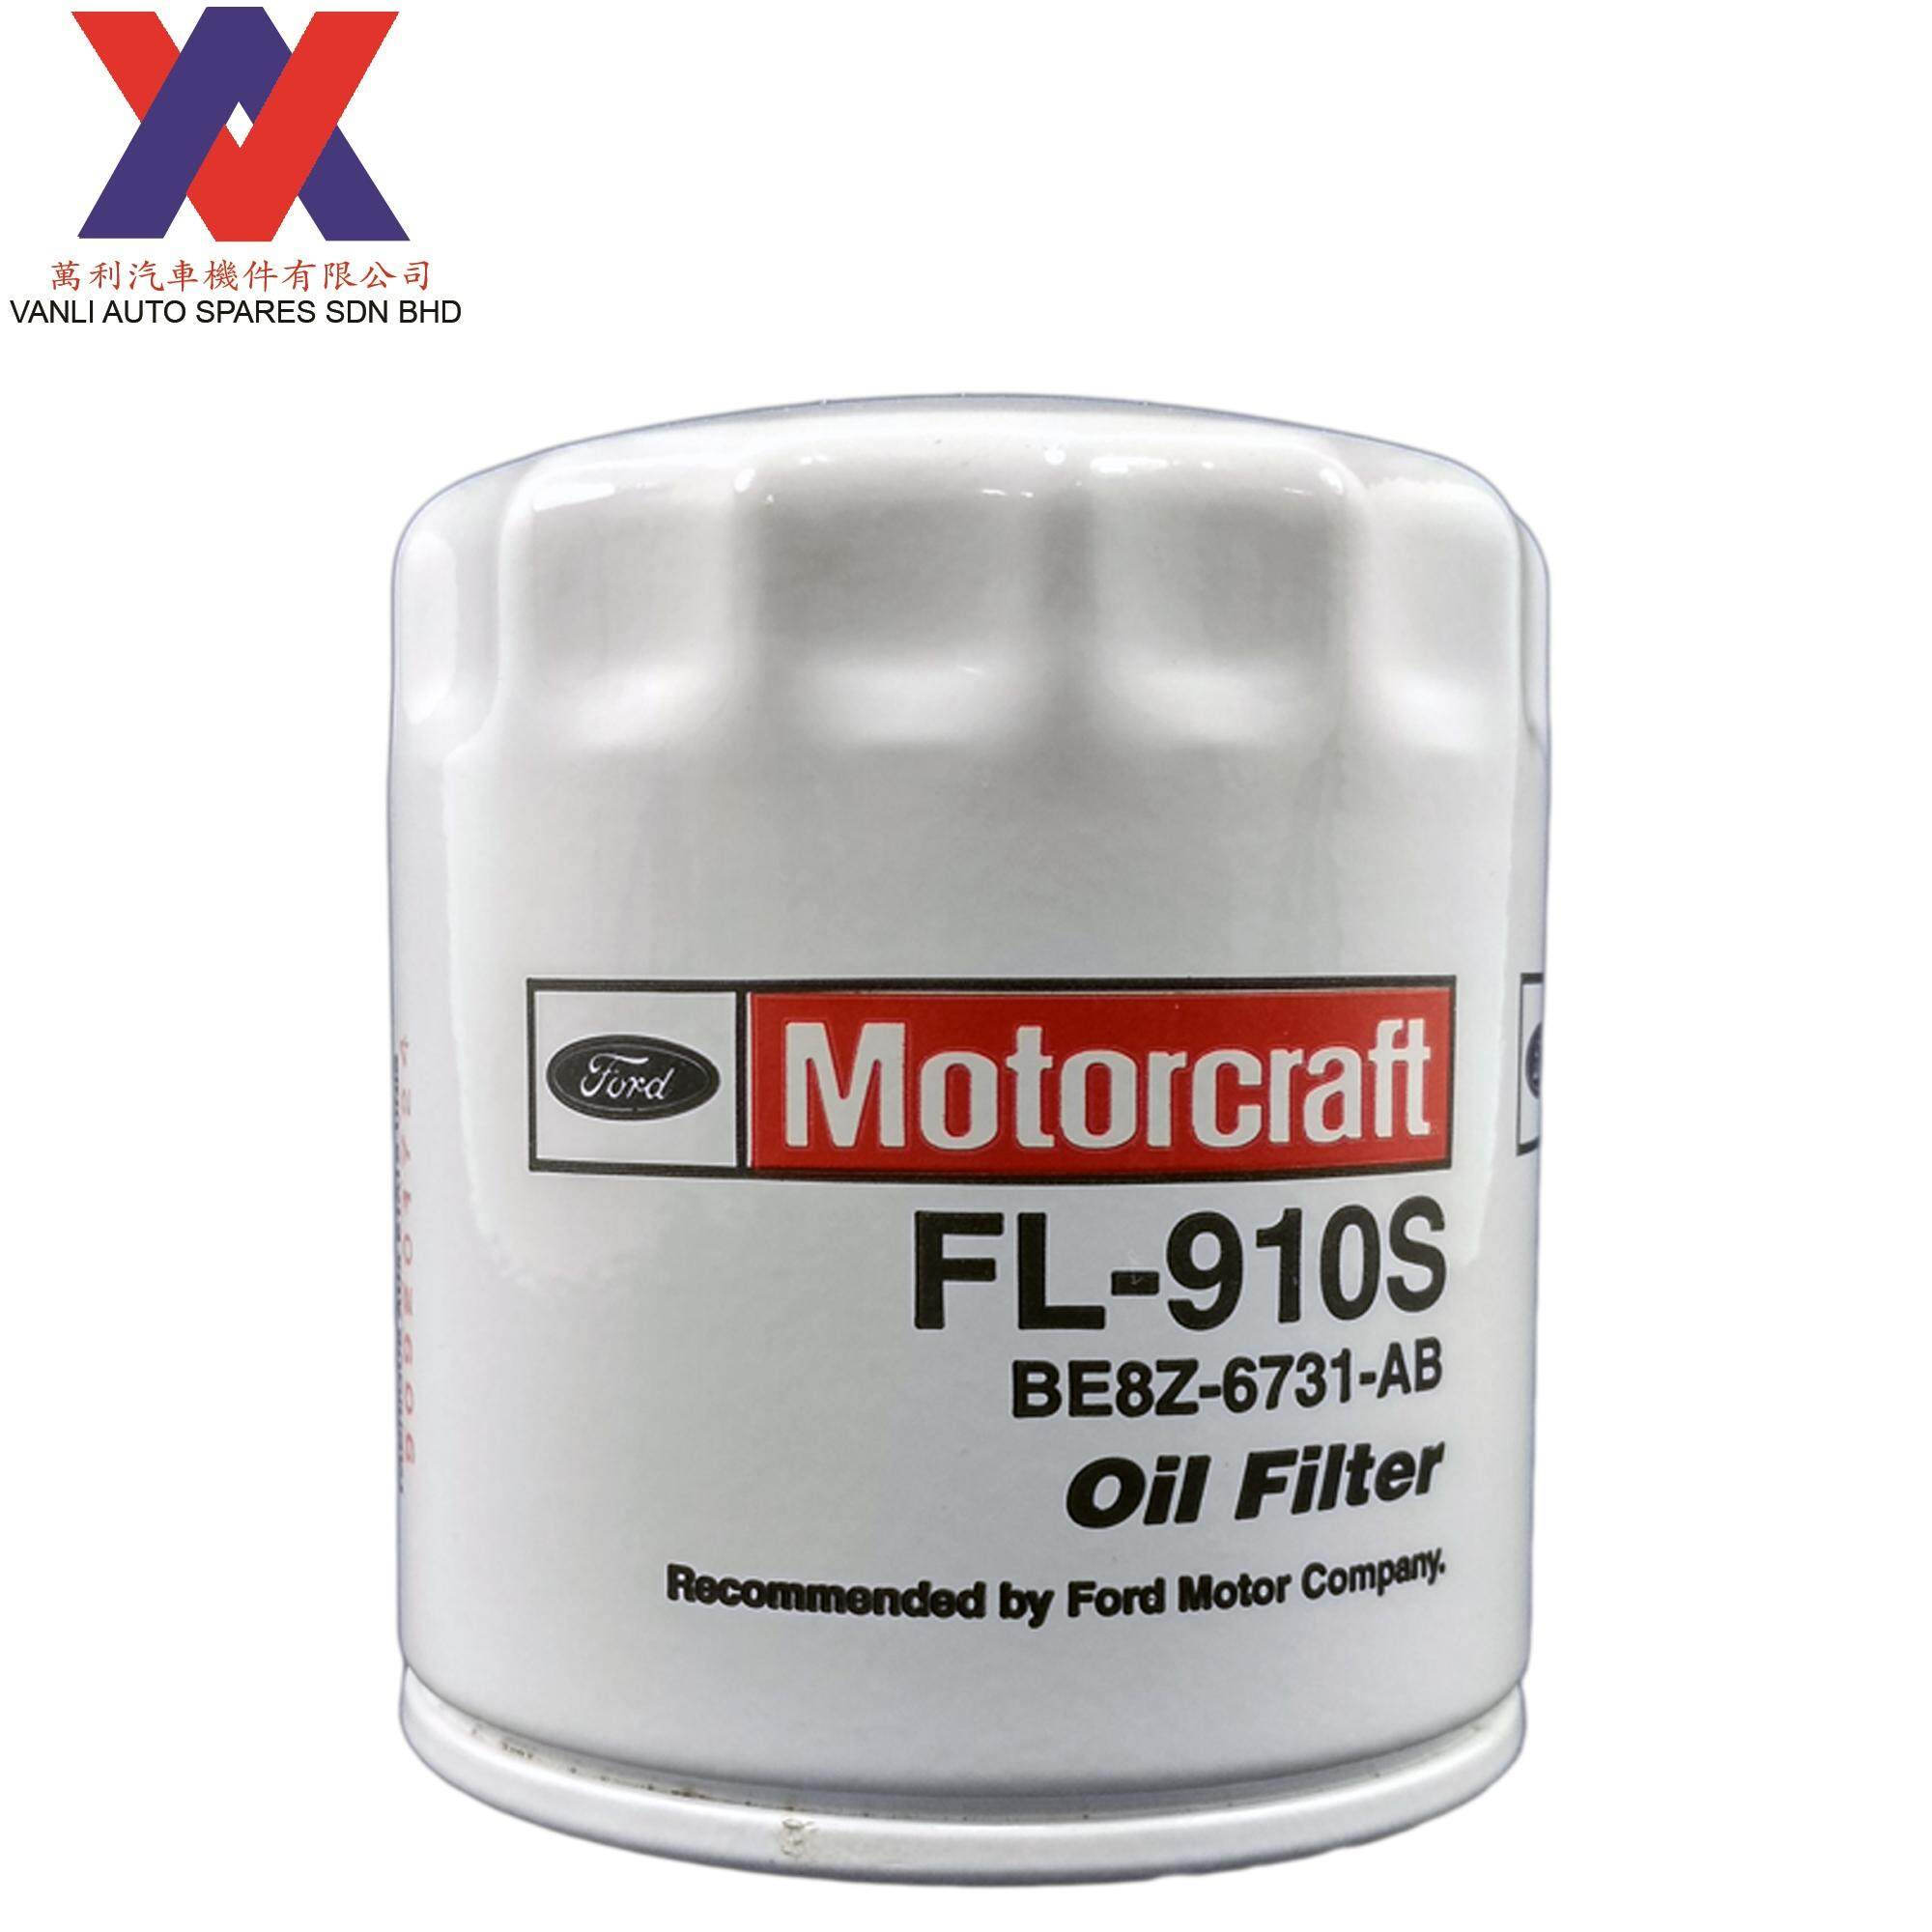 Ford Auto Parts Spares Price In Malaysia Best 2012 Fiesta Fuel Filter Motorcraft Oil Be82 67 31ac